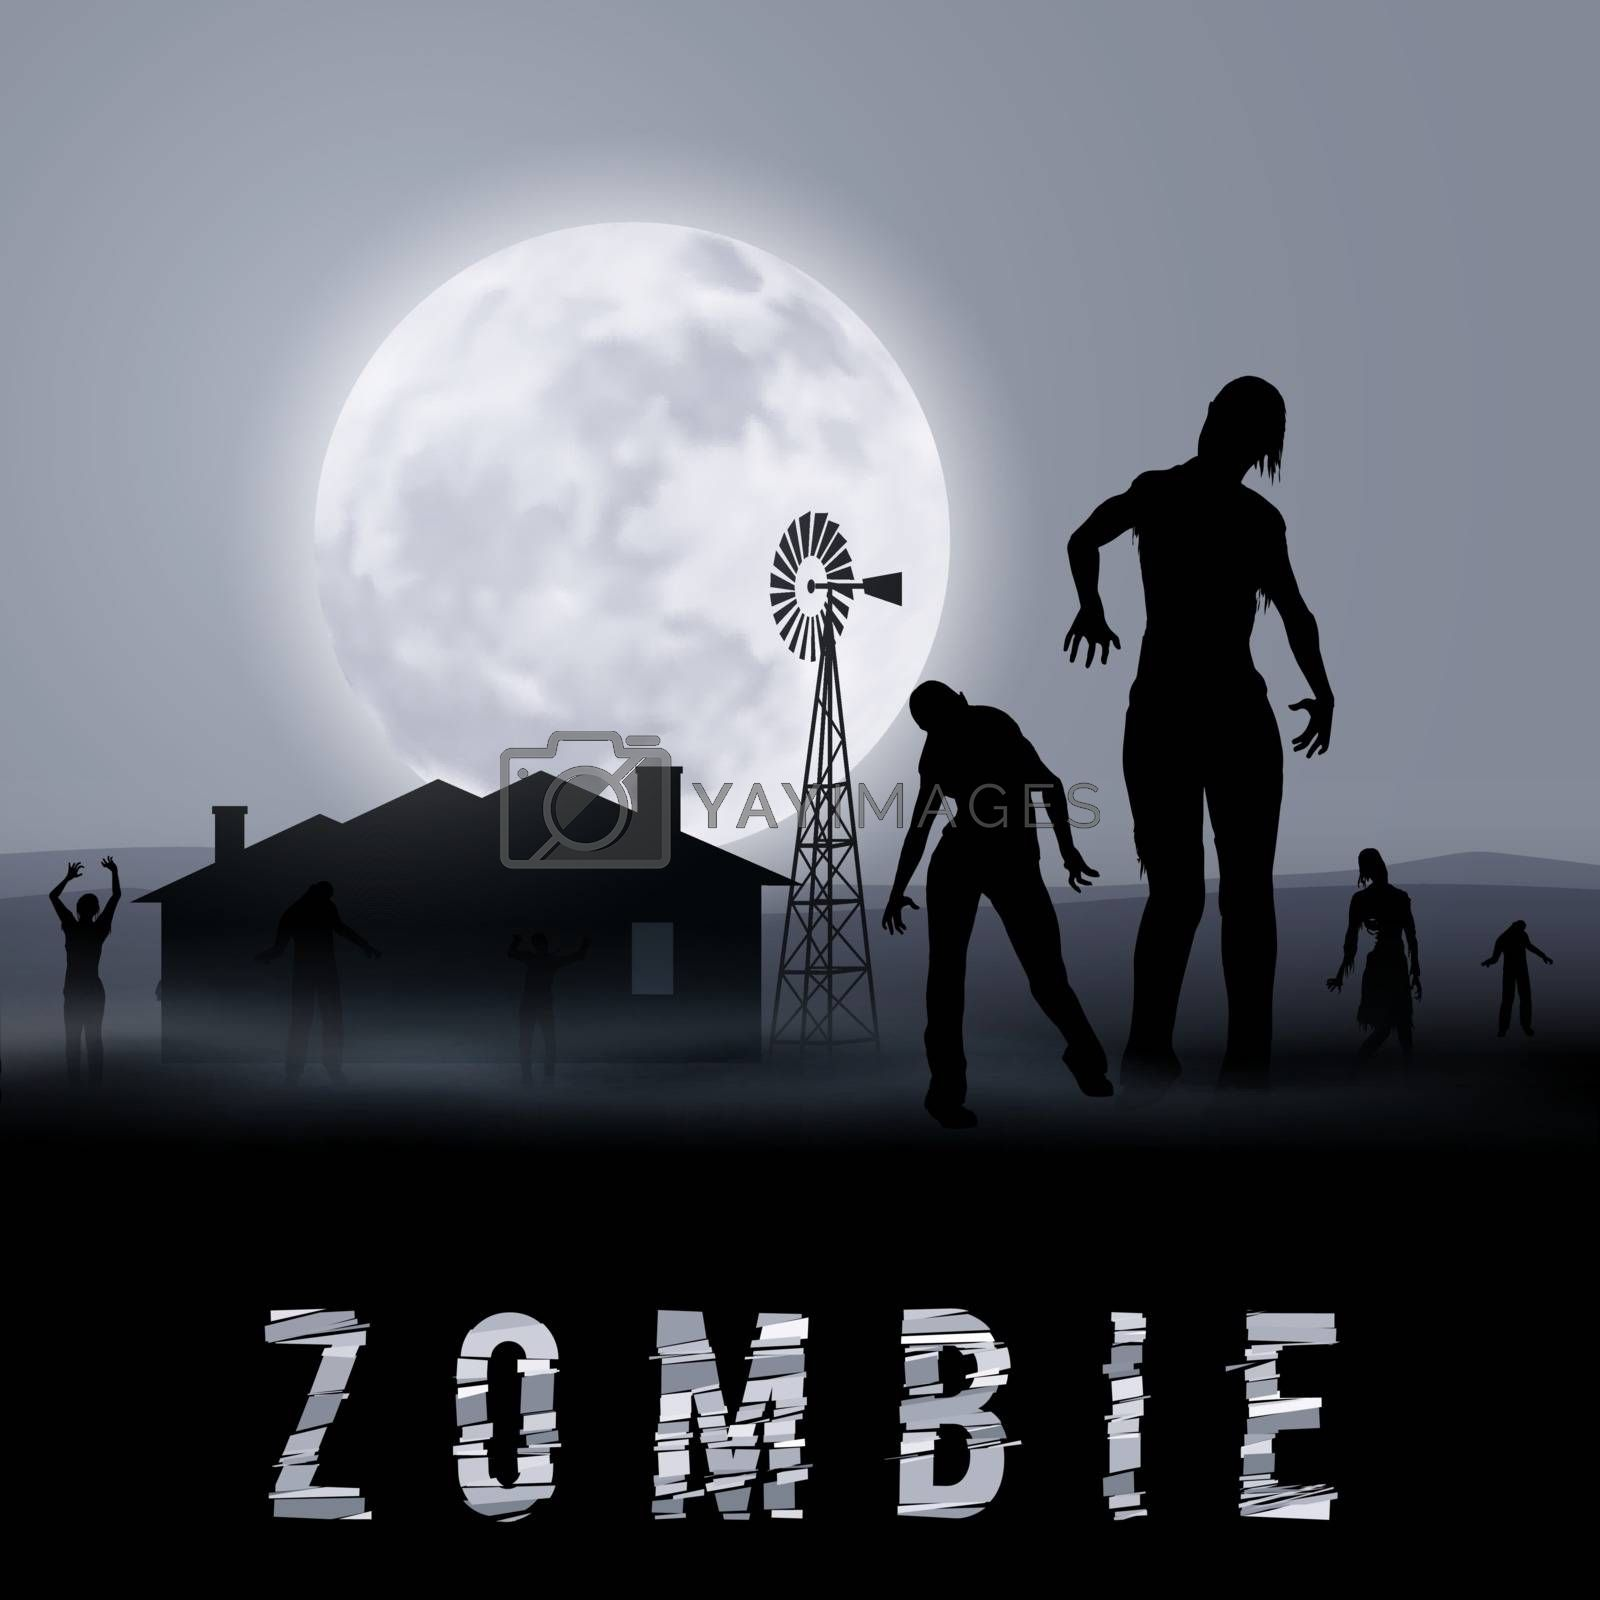 Zombie Walking out From Abandoned House at Night. Silhouettes Illustration for Halloween Poster